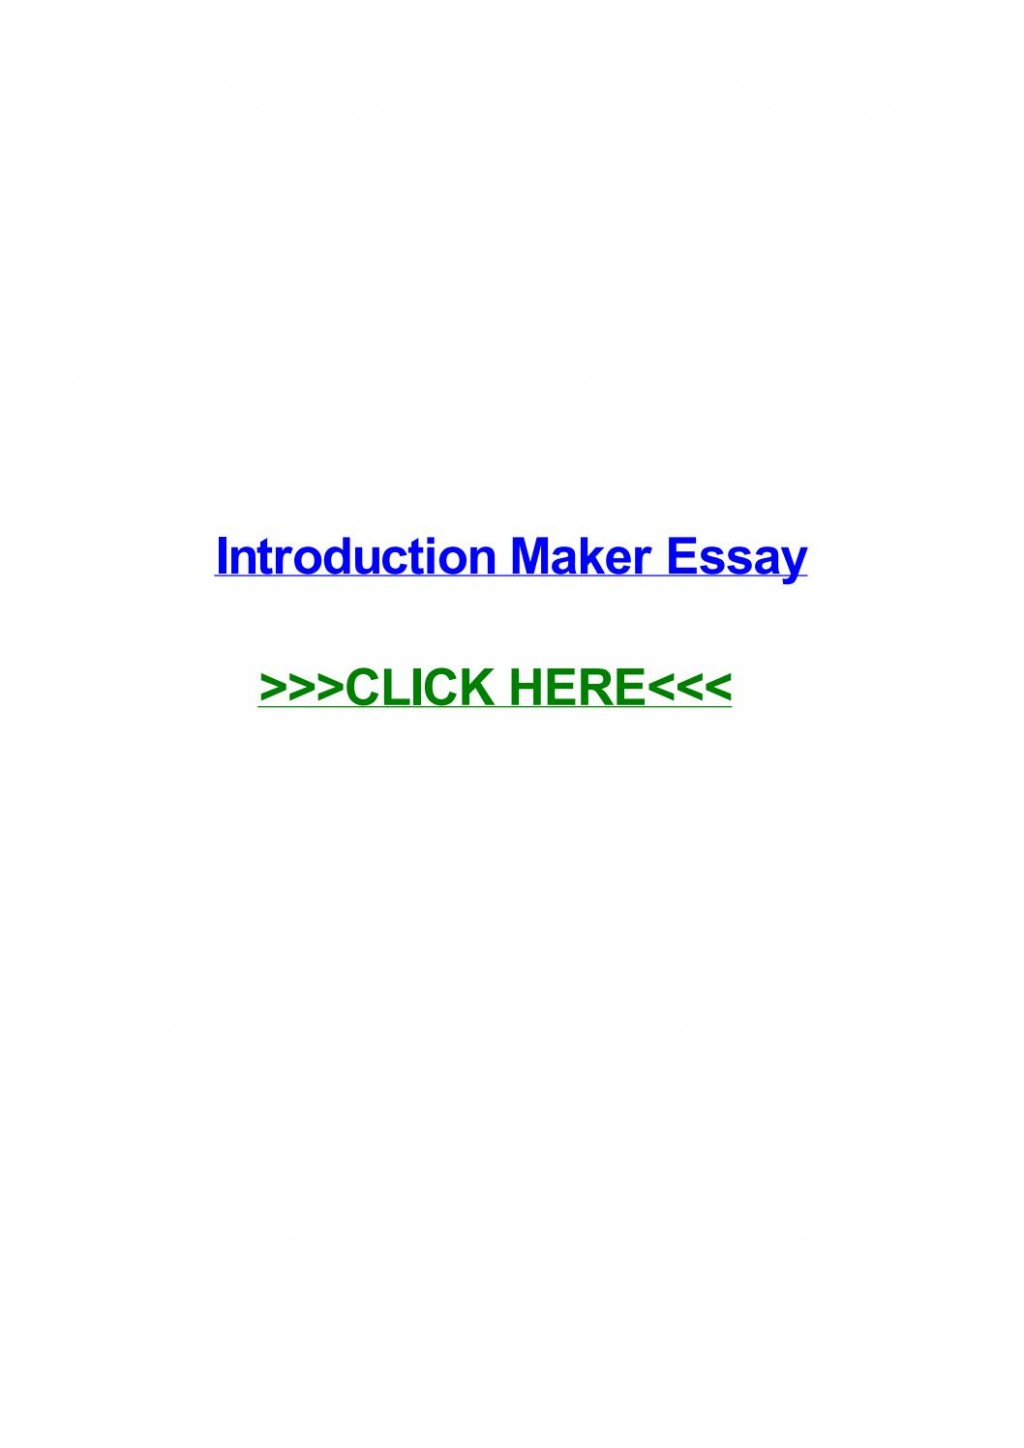 008 Conclusion Maker For Essays Page 1 Essay Staggering Large